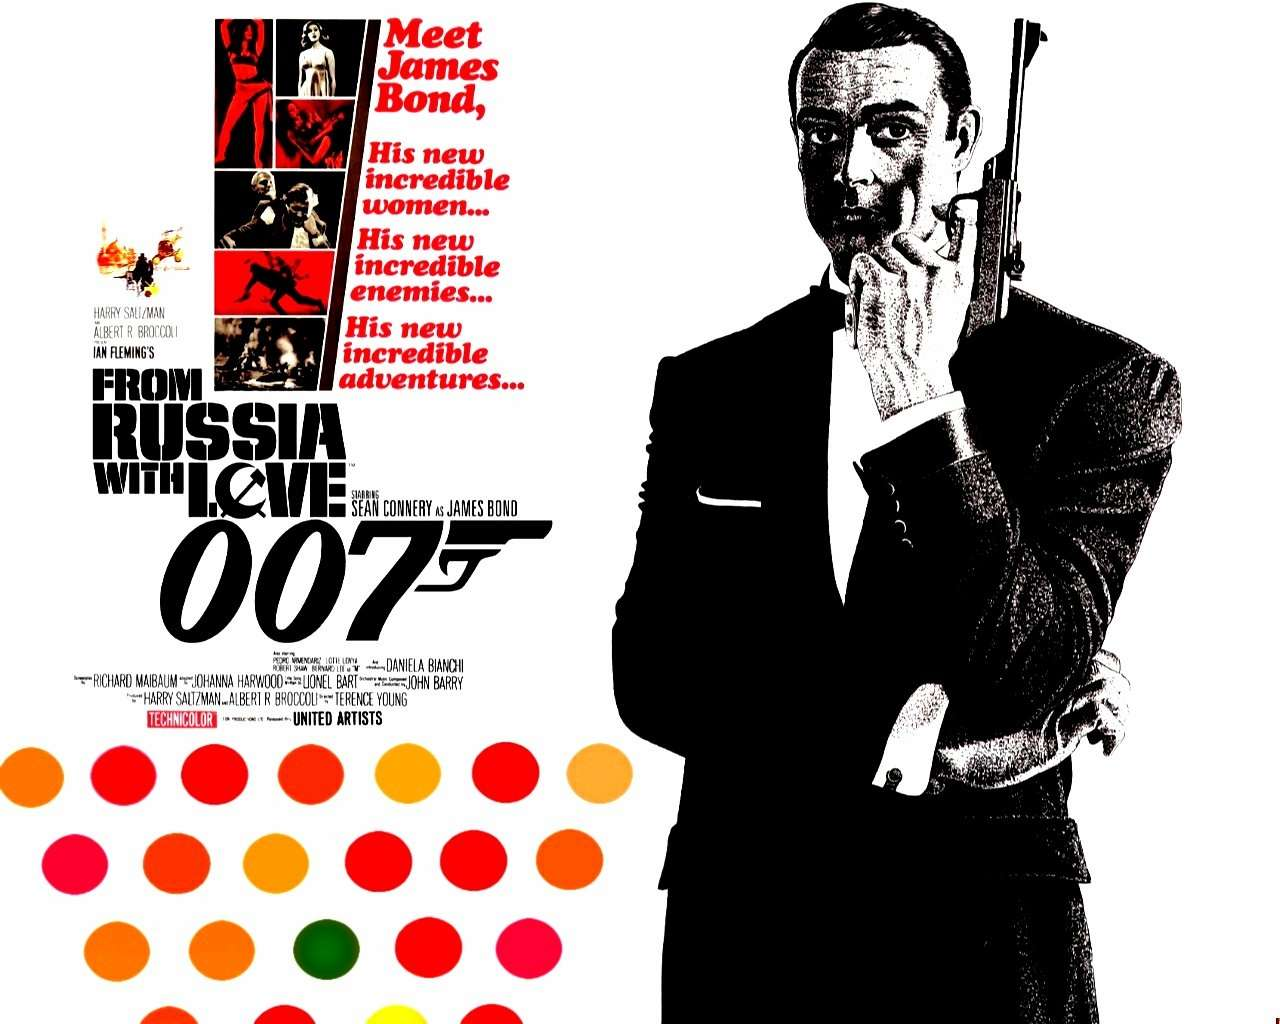 James Bond Car Wallpaper From Russia With Love Wallpaper Hd Wallpapers